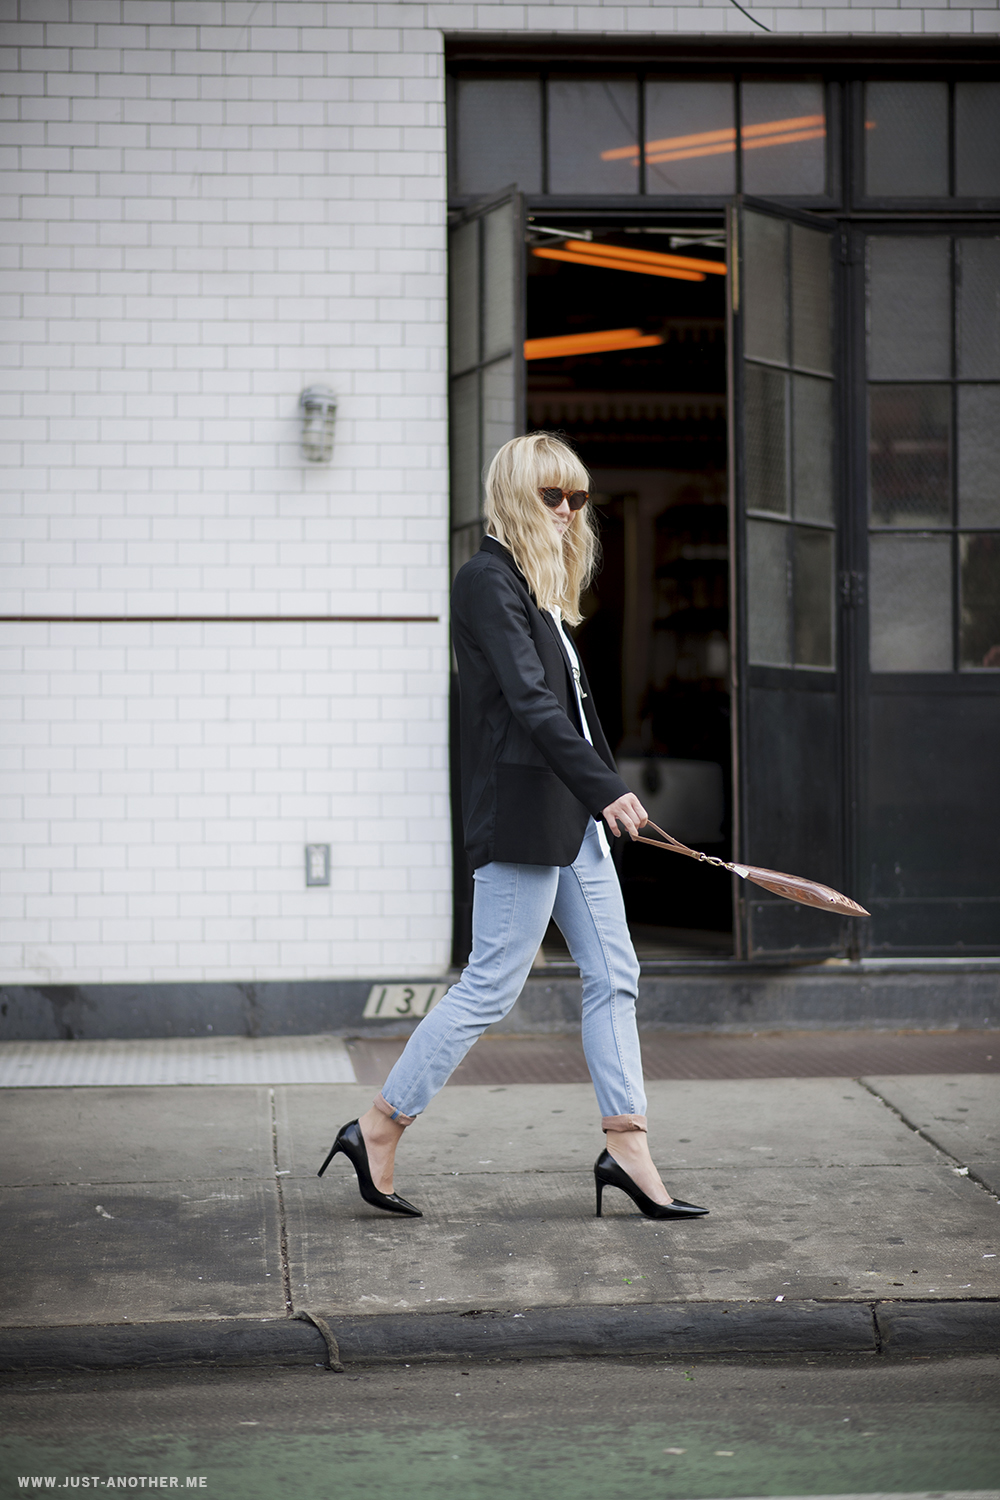 BACK TO WORK | Just Another Fashion Blog